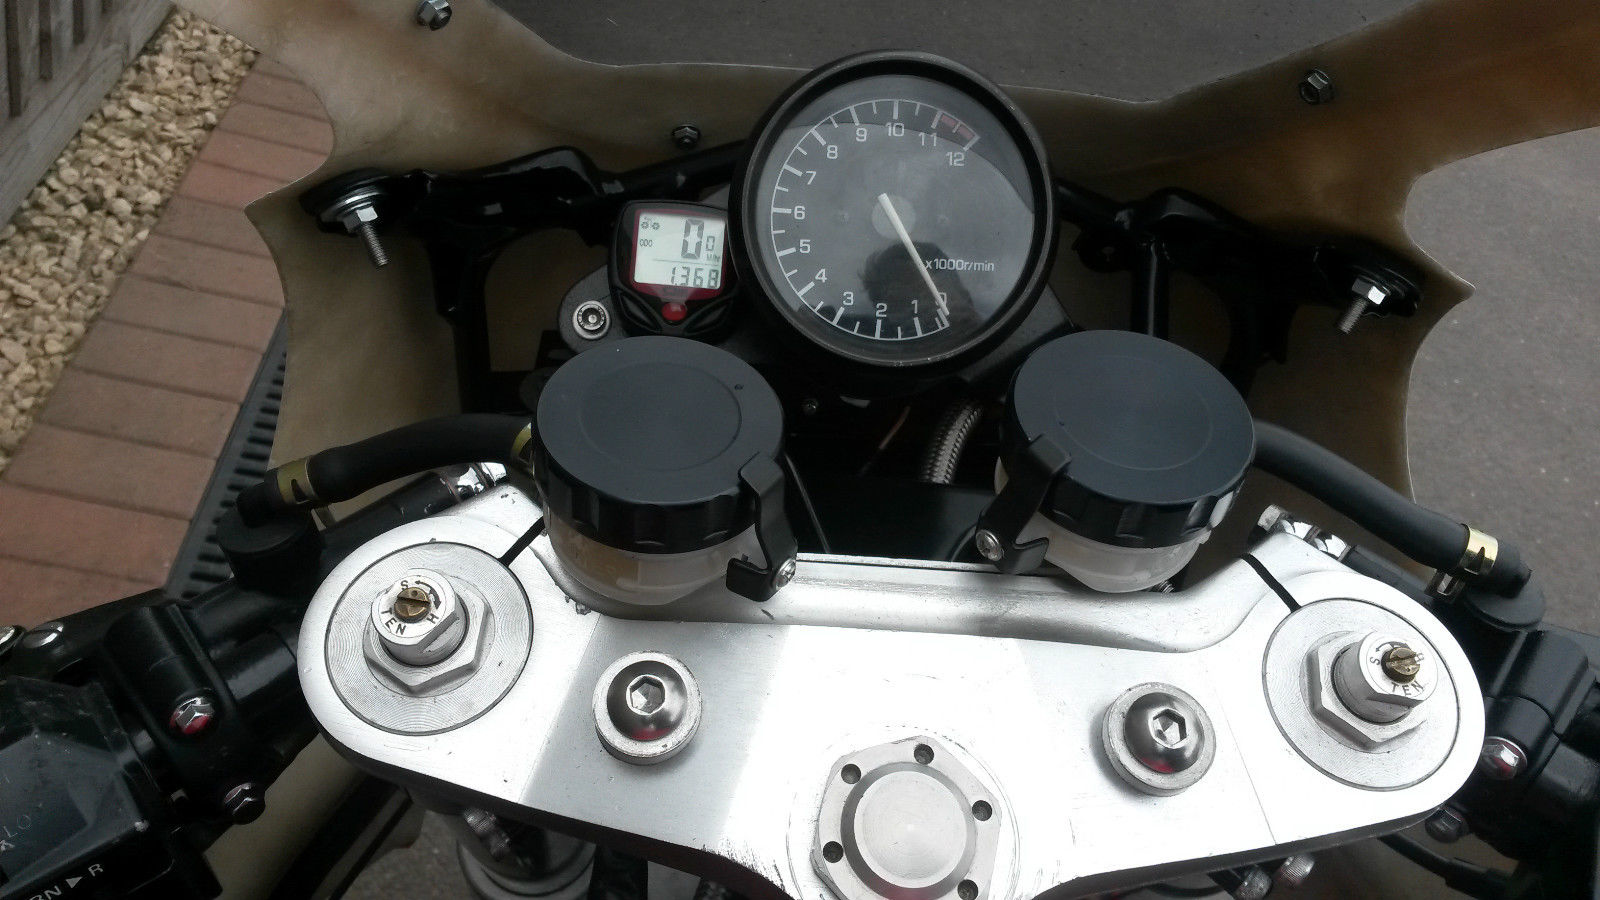 Yamaha Fz 750 2mg Rocketgarage Cafe Racer Magazine Daytona Instruments Speedo Wiring Diagram